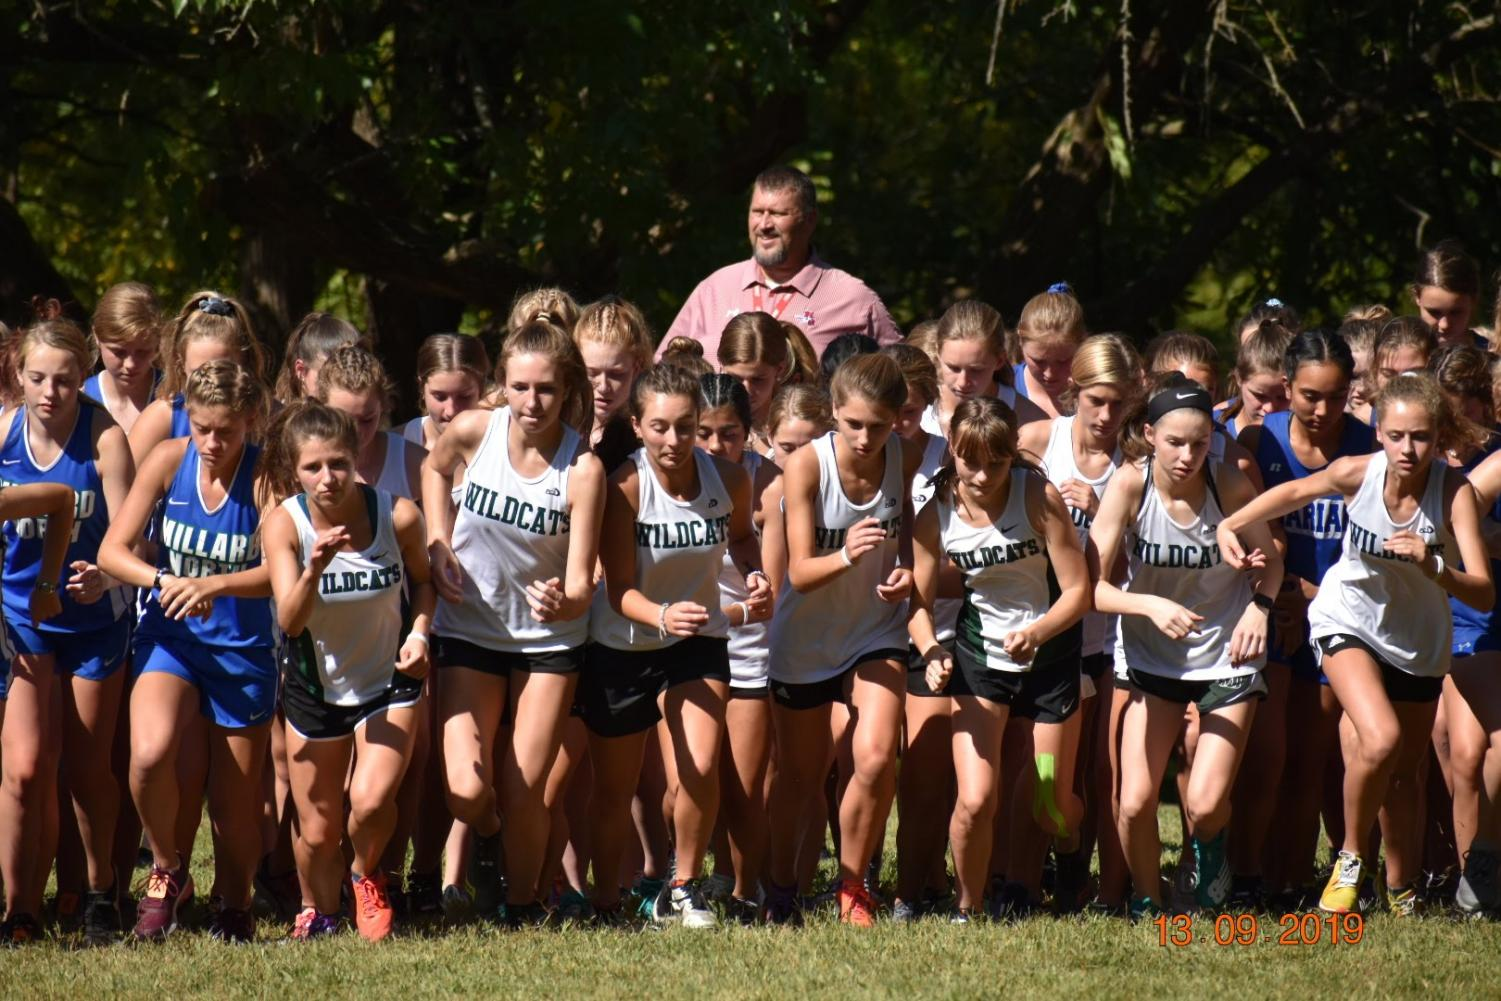 The Wildcats girls ready for their race. The runners all wanted their times close together and to run together so they would do better in their race.